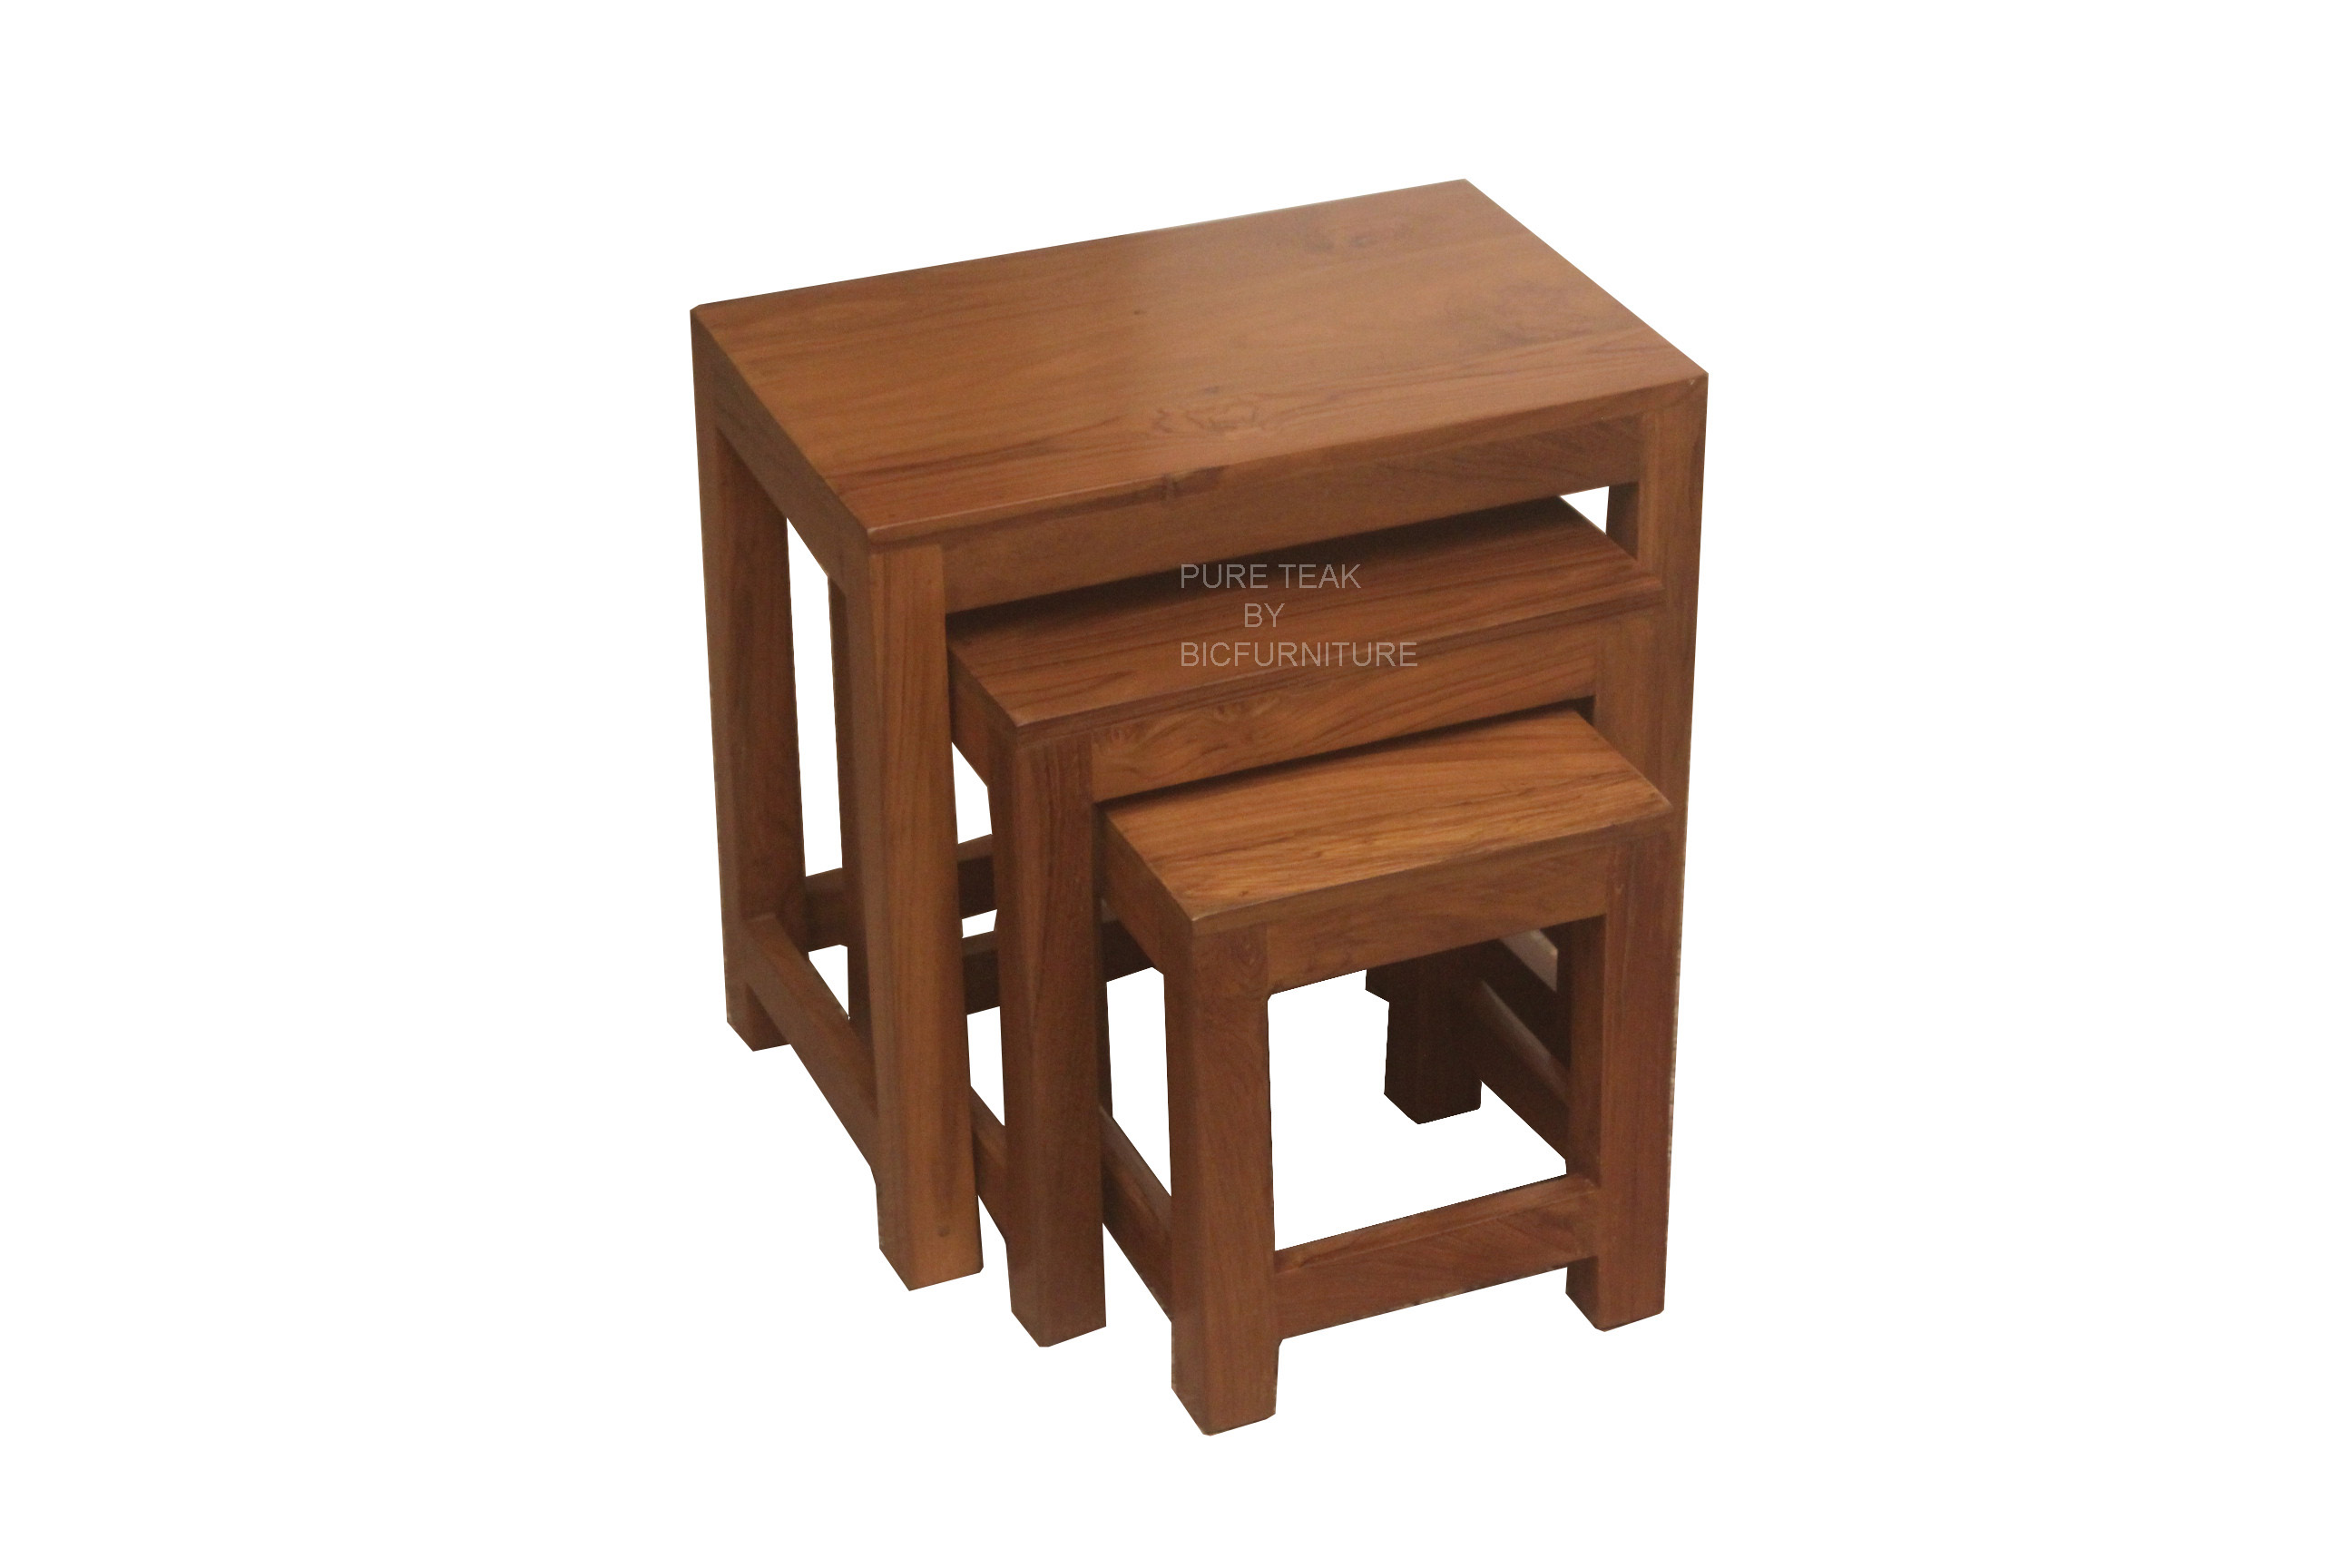 Old Teak Wood Furniture For Sale In Chennai Ever X Wood